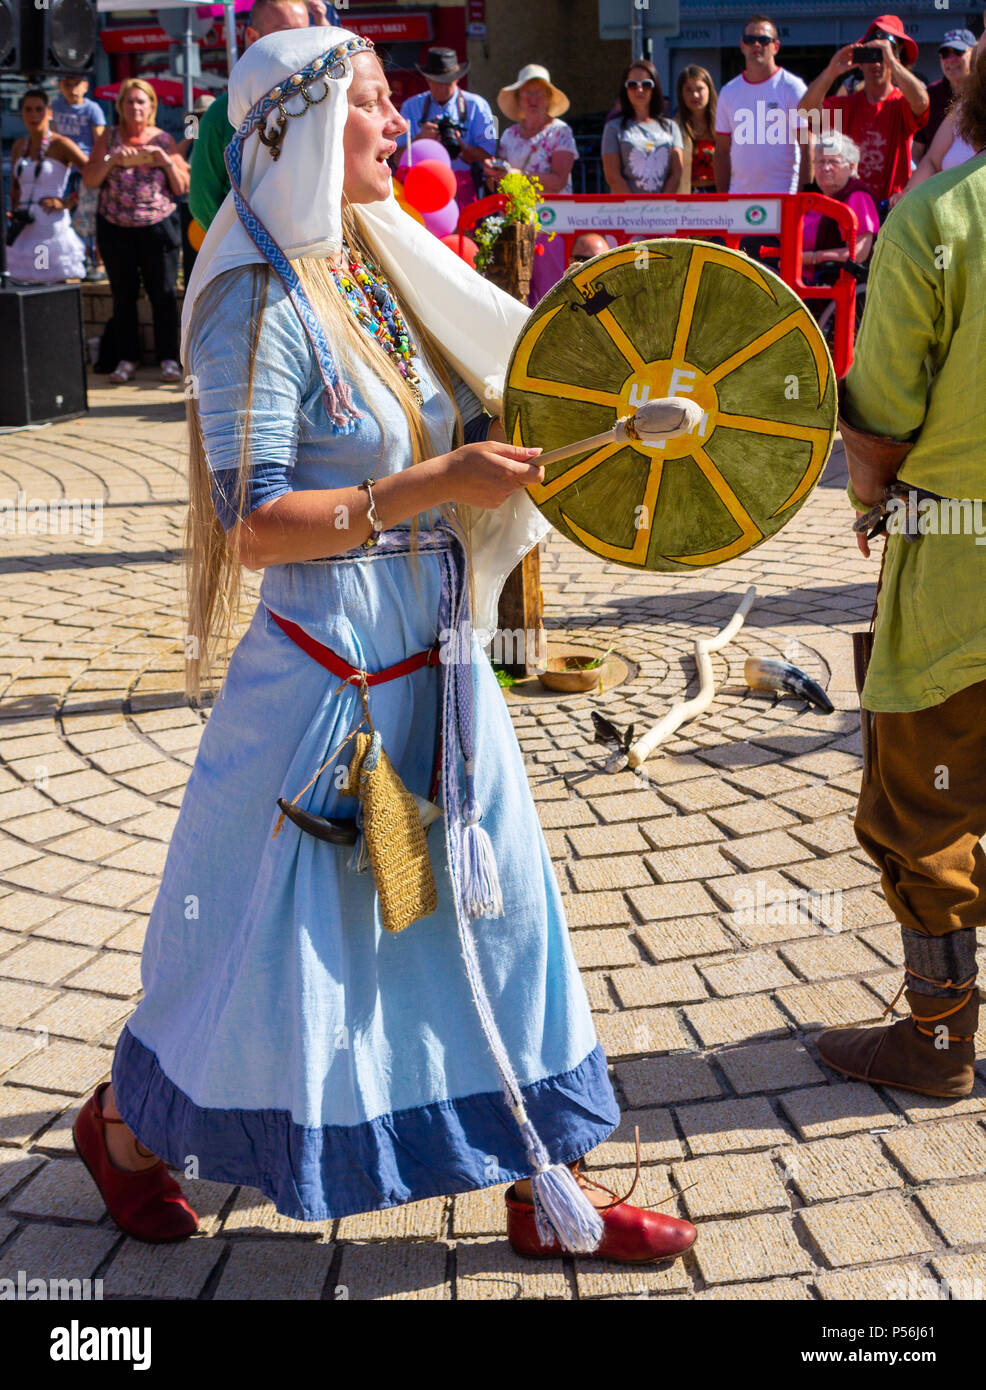 female in  Viking dress or costume playing a hand held drum as part of mid summer ceremony re enactment in bantry west cork, ireland - Stock Image